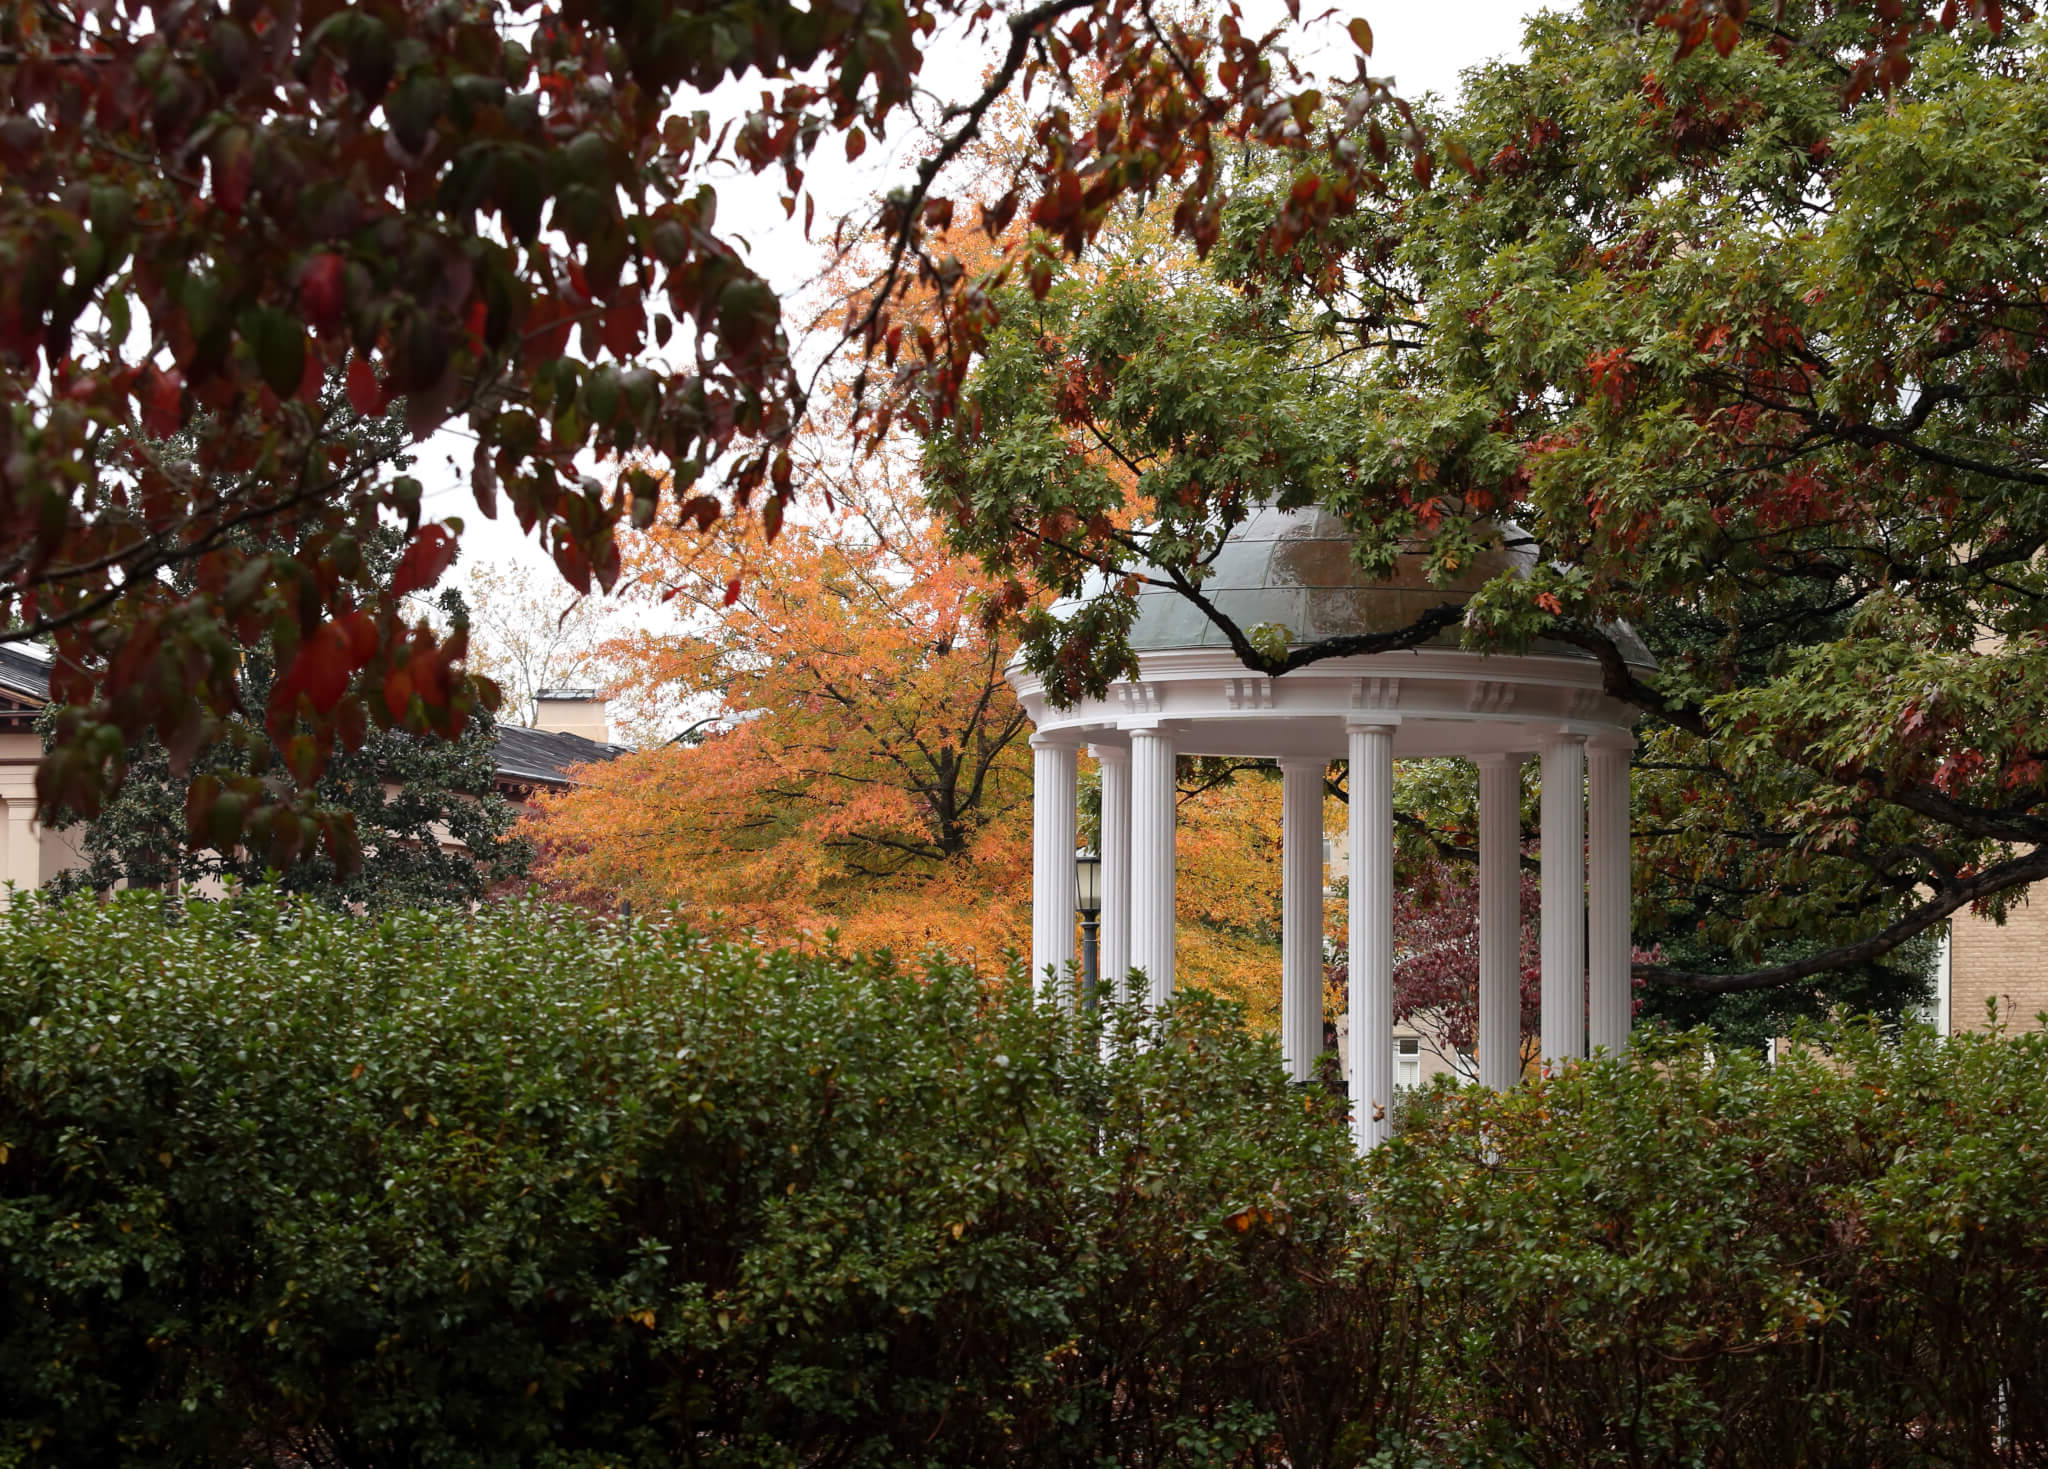 Old Well with fall leaves in the background